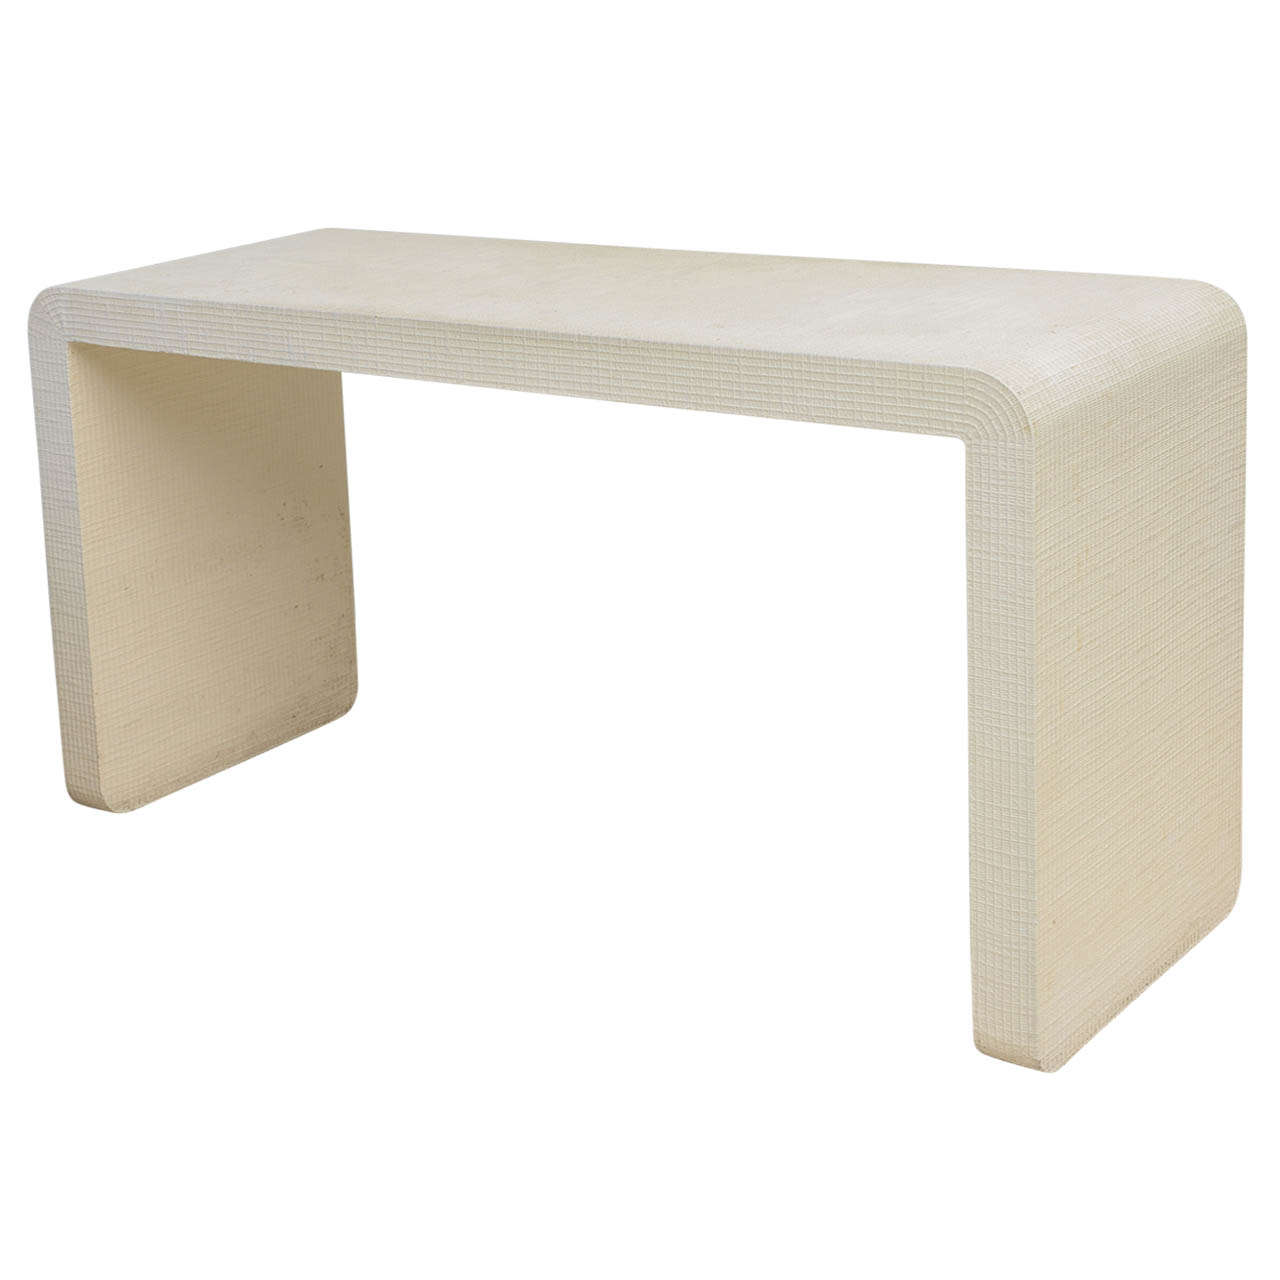 An American Modern White Murano Linen Waterfall Console Table Karl Springer At 1stdibs